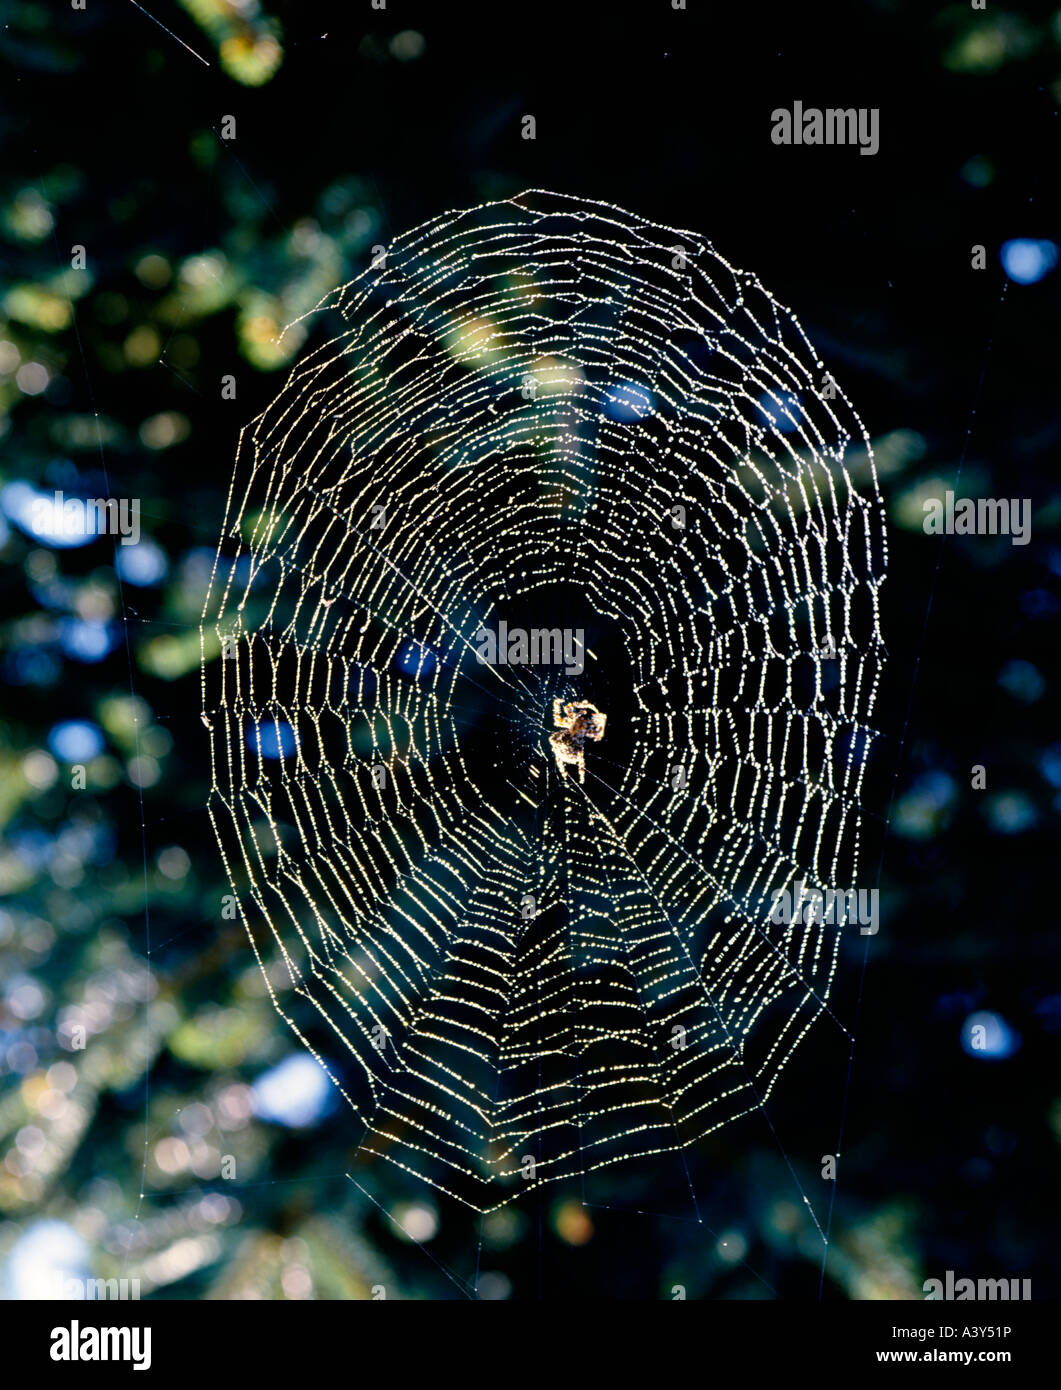 Morning dew clings to a spider web and is lighted by the low angle sun - Stock Image